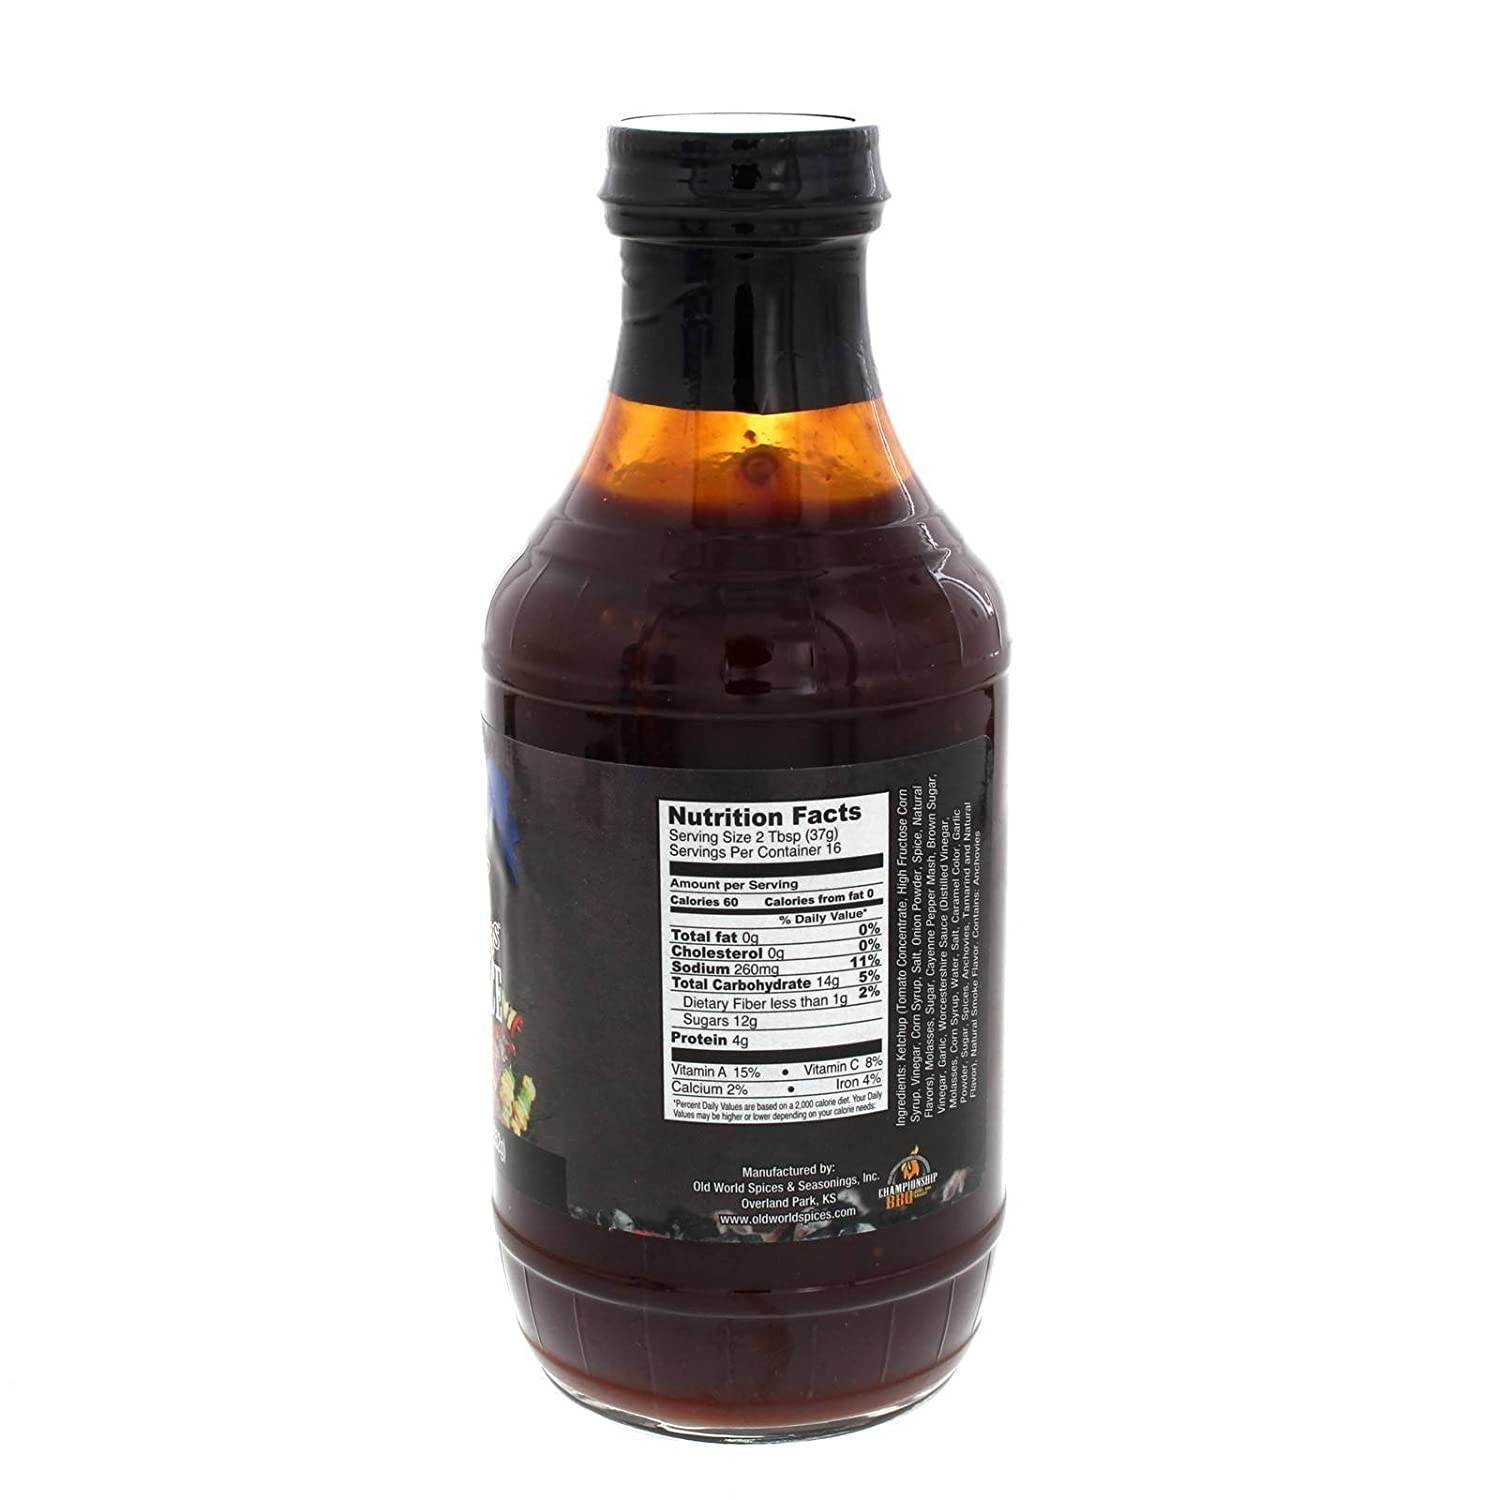 Salsa BBQ Three Little Pigs BBQ Competition (Competencia) - 552g (19.5 oz): Amazon.es: Alimentación y bebidas